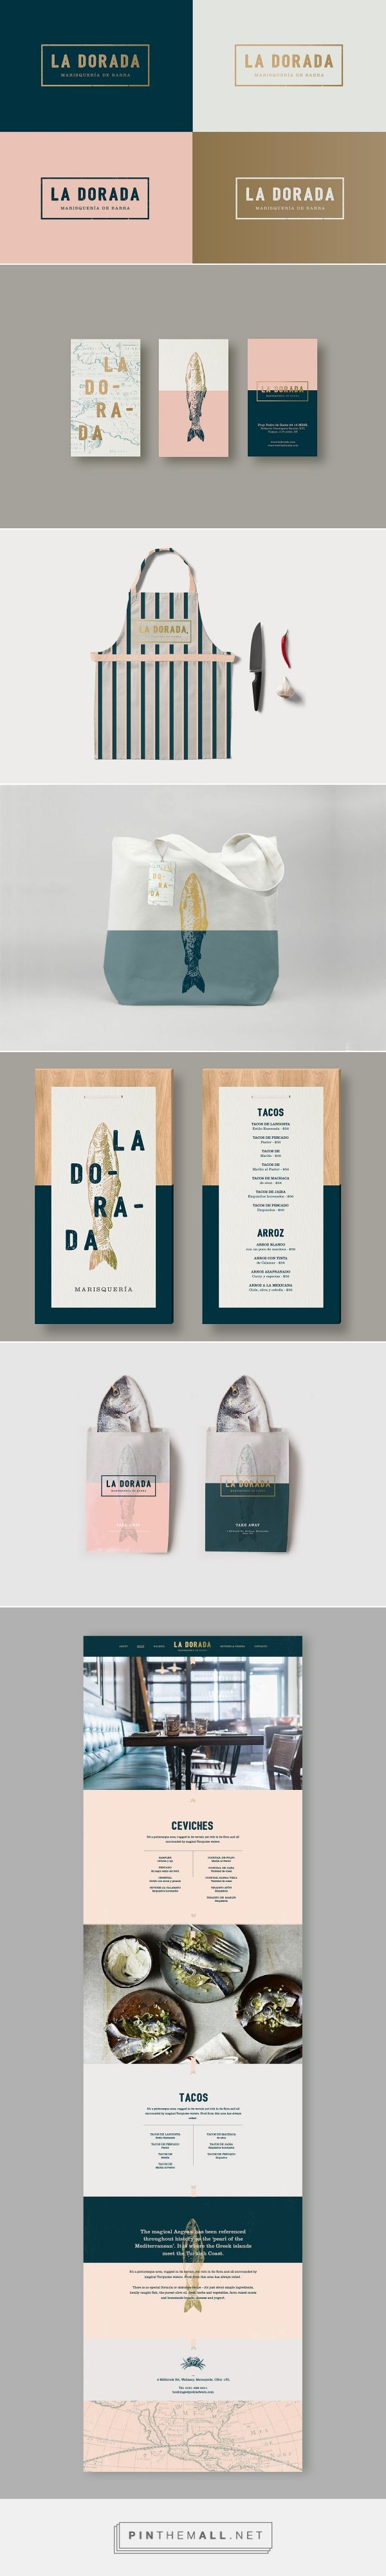 Food Inspiration – La Dorada packaging branding on Behance curated by Packaging Diva PD. Who's up for fish for lunch : ) PD… – a grouped images picture